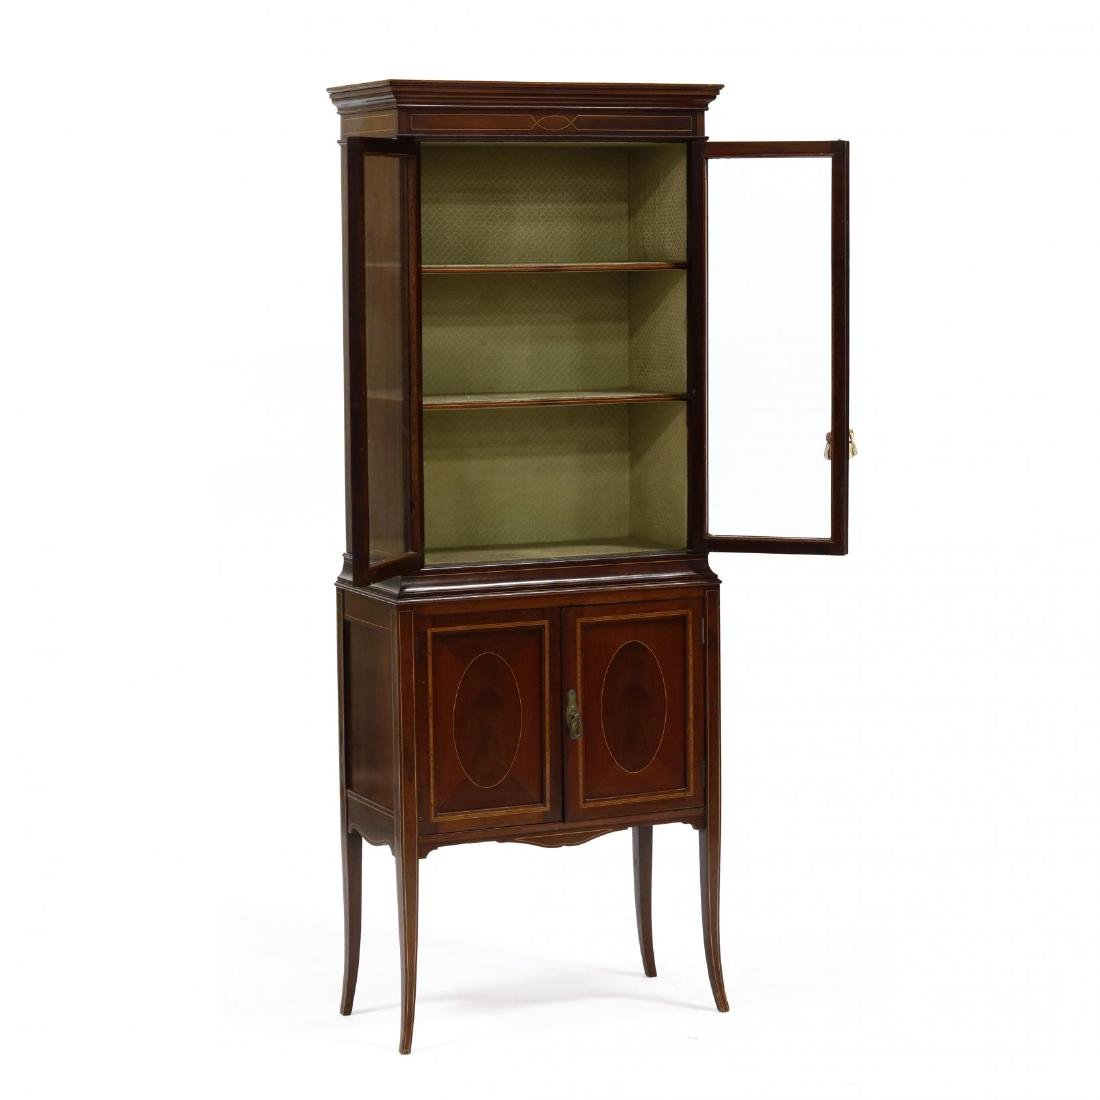 Edwardian Diminutive Bookcase - 2